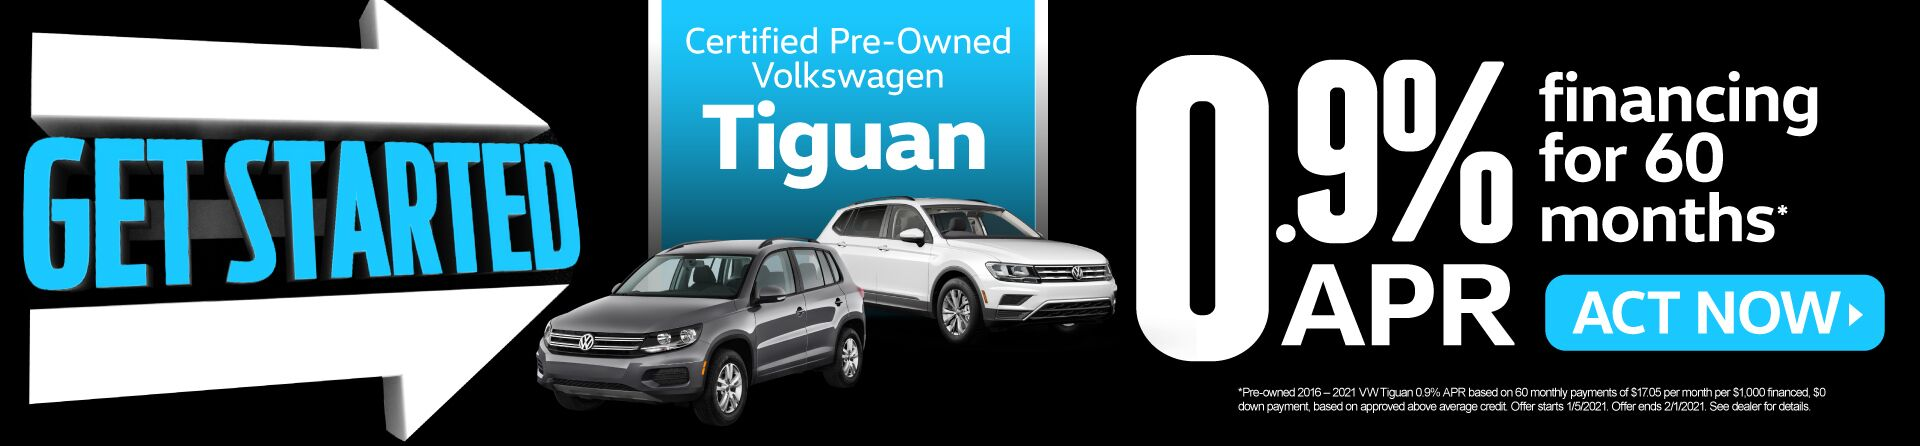 Certified Pre-Owned Volkswagen Tiguan - 0.9% APR financing for 60 months